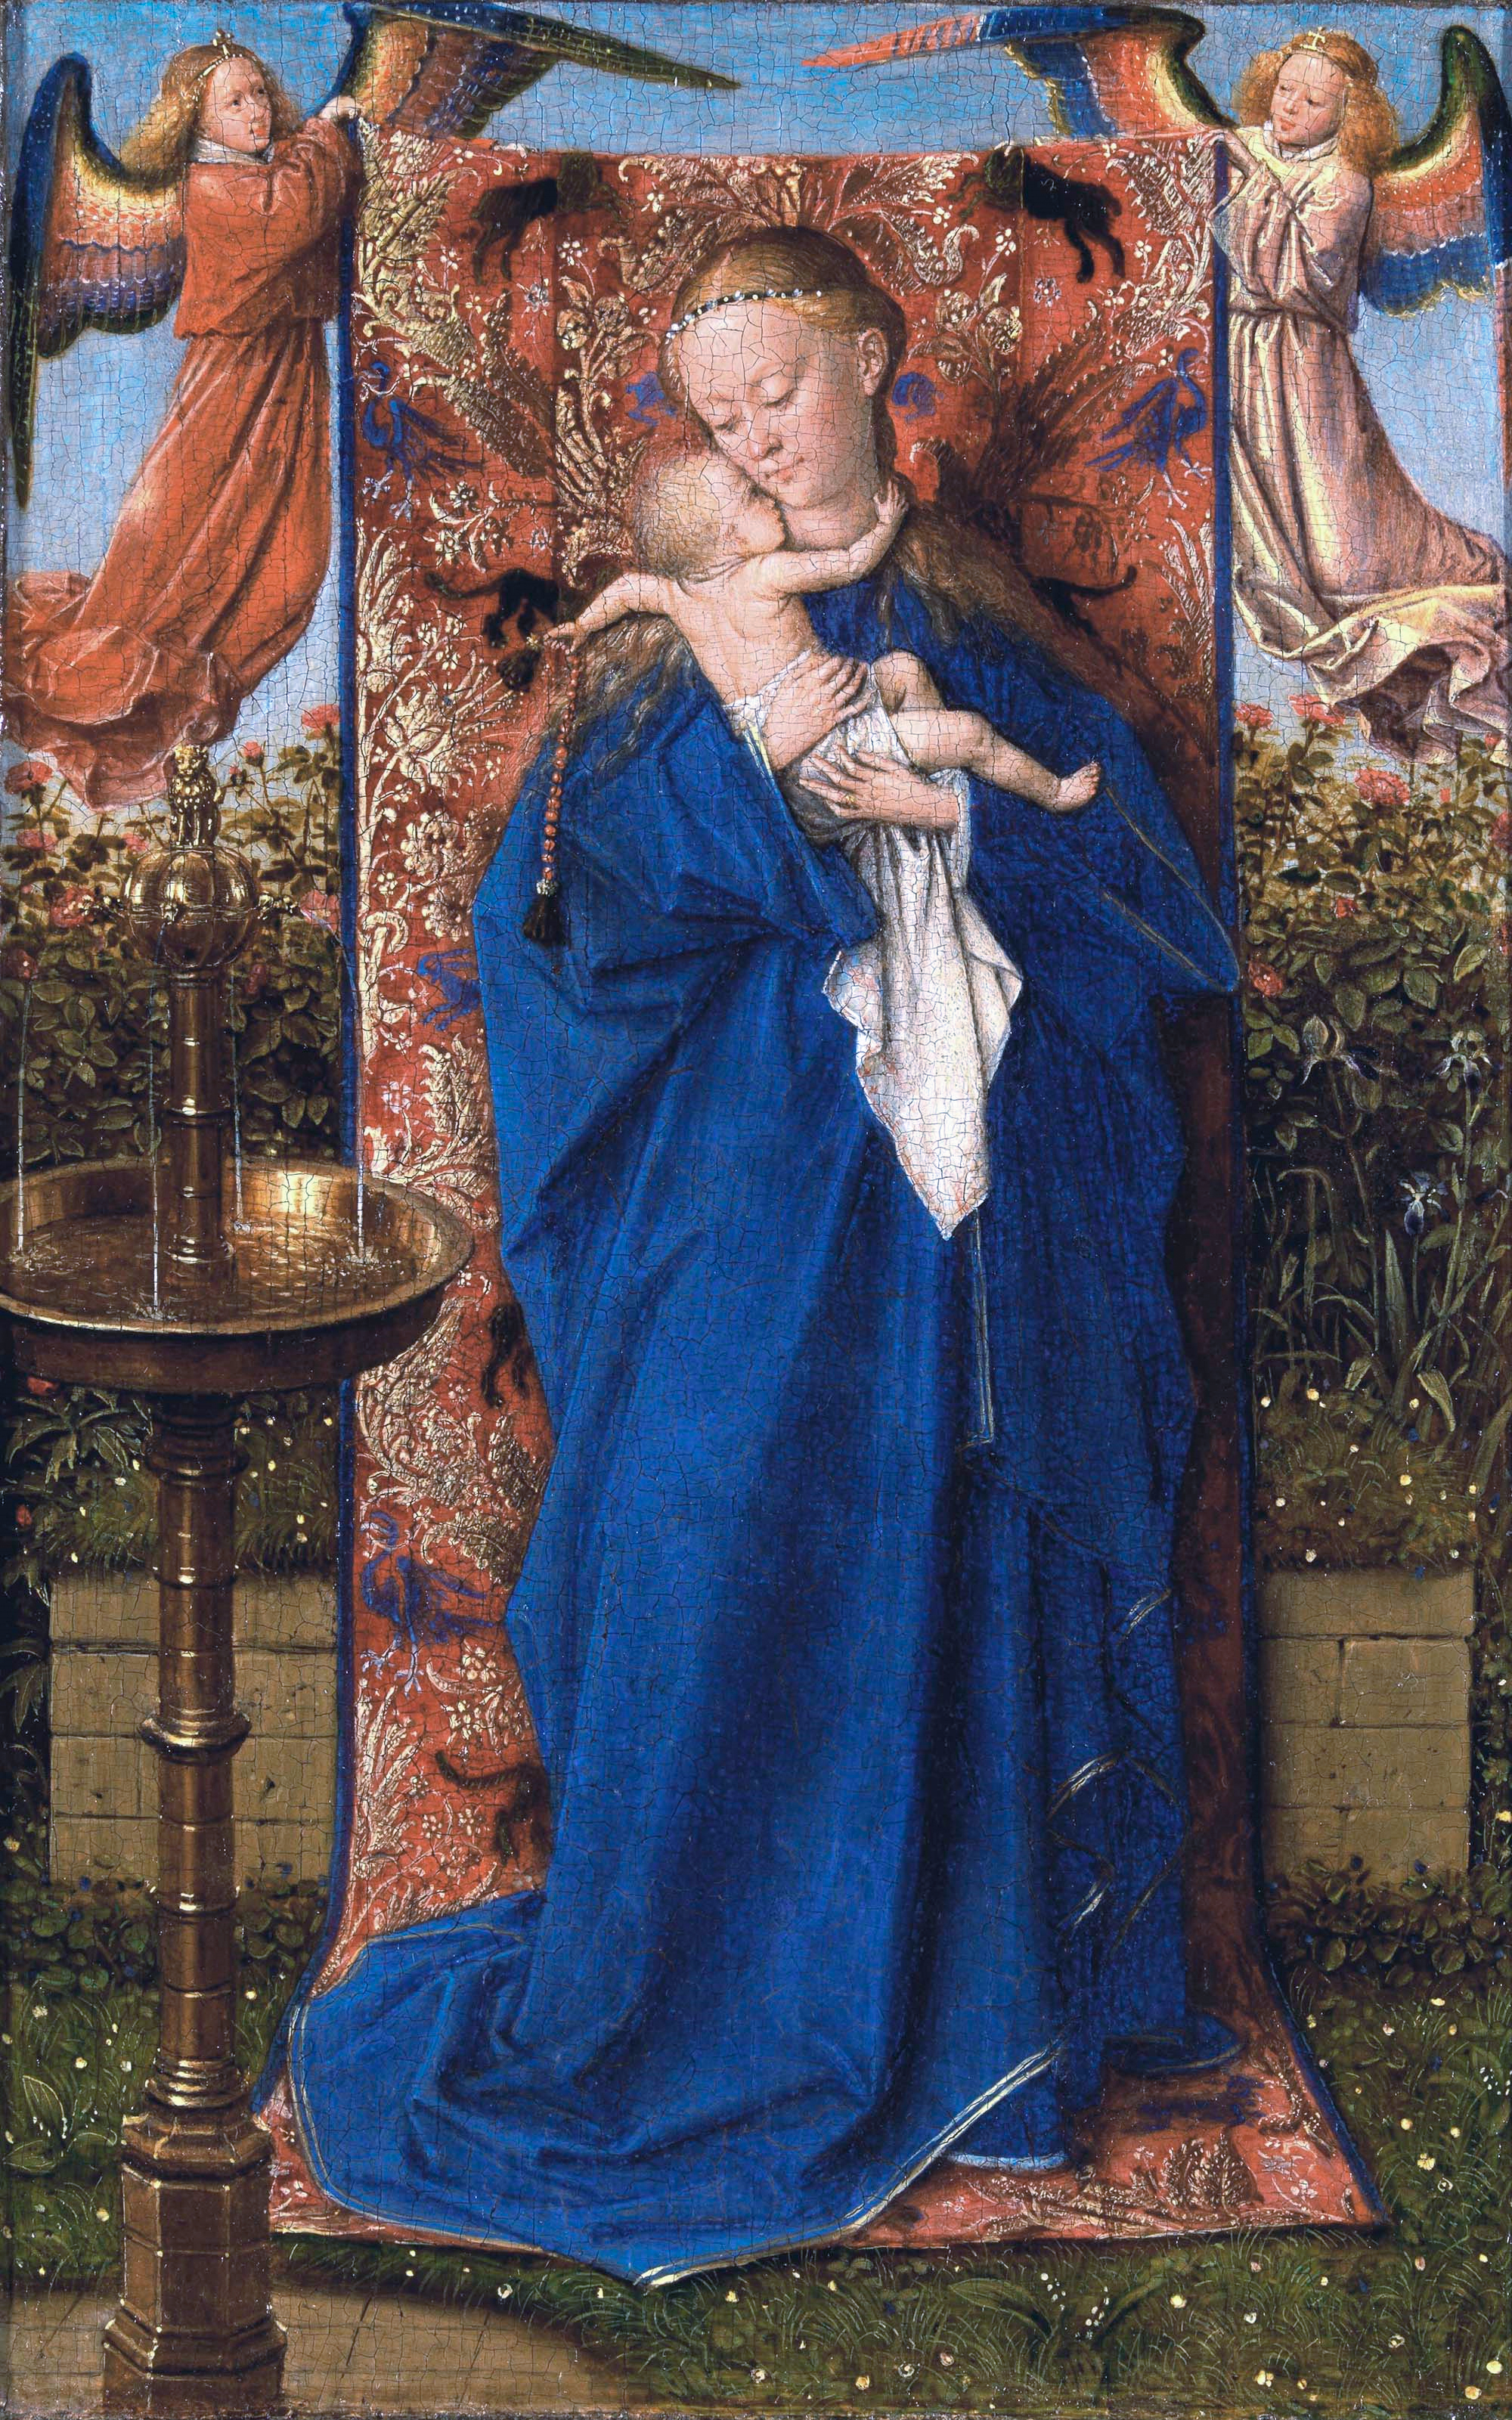 Madonna and Child at the Fountain, by Jan van Eyck